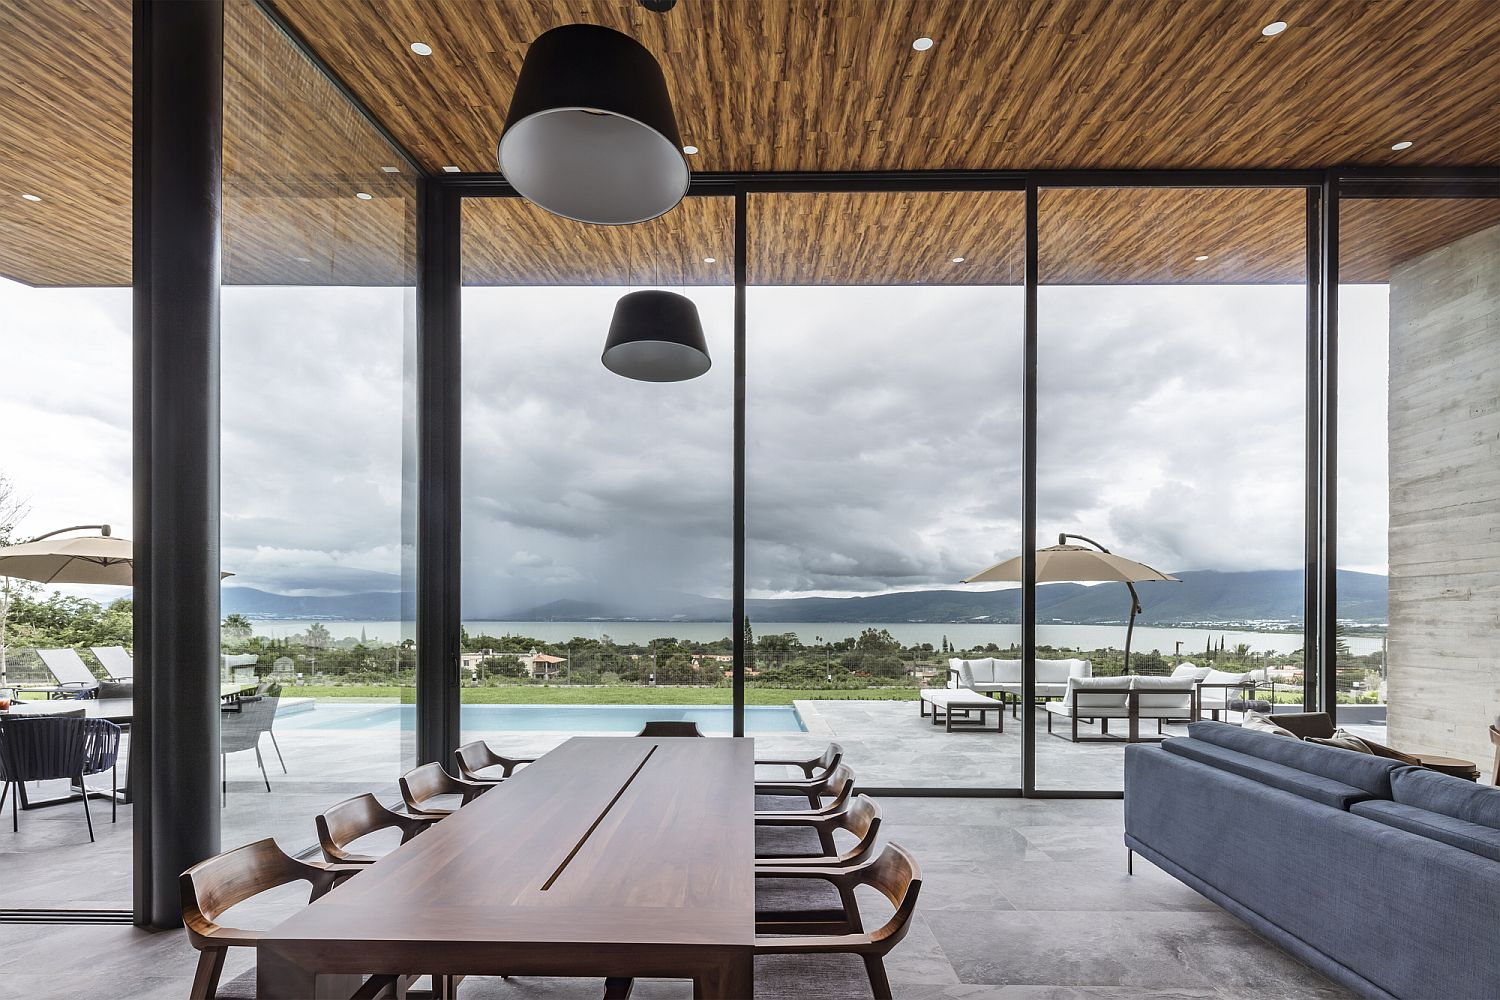 Stunning lake views steal the show in this dining space